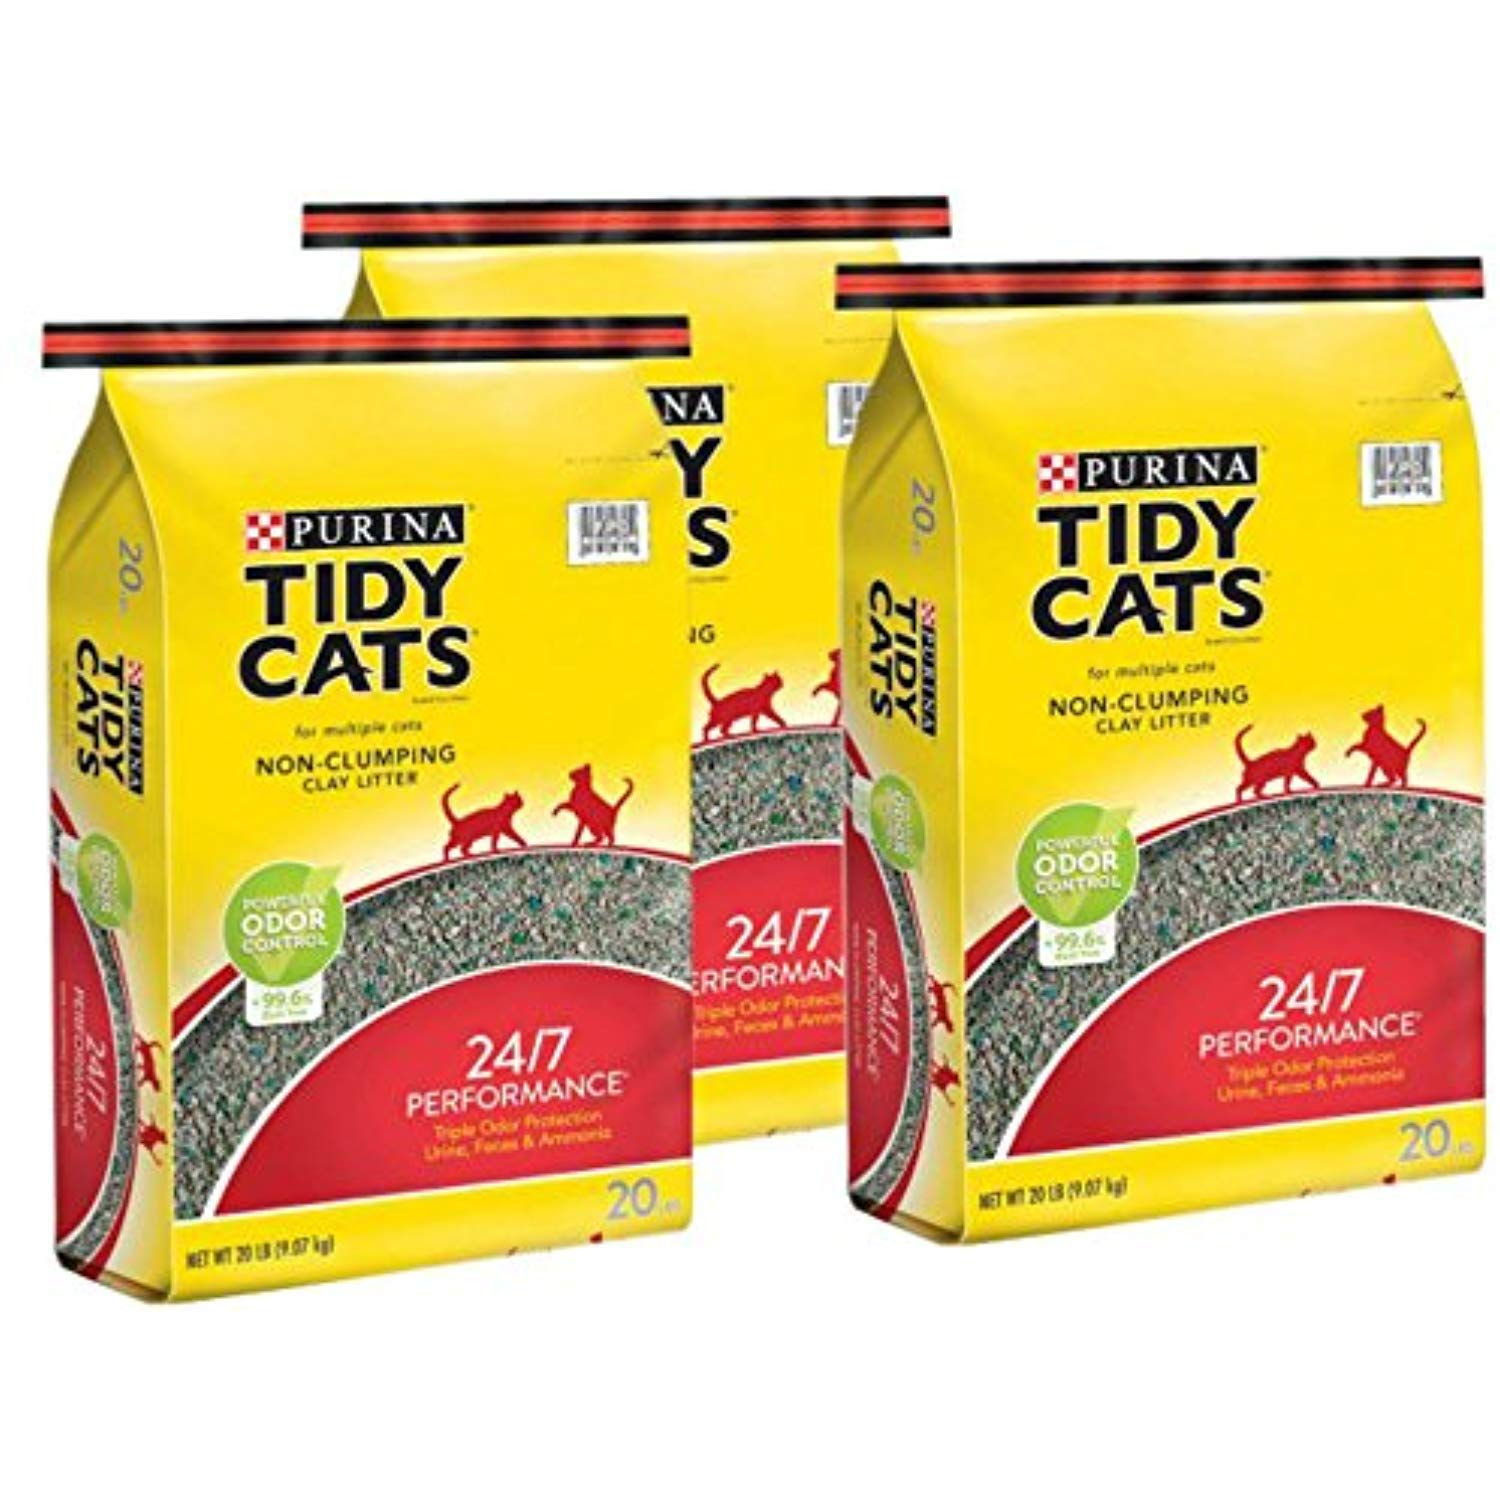 Purina Tidy Cats NonClumping Cat Litter 24/7 Performance